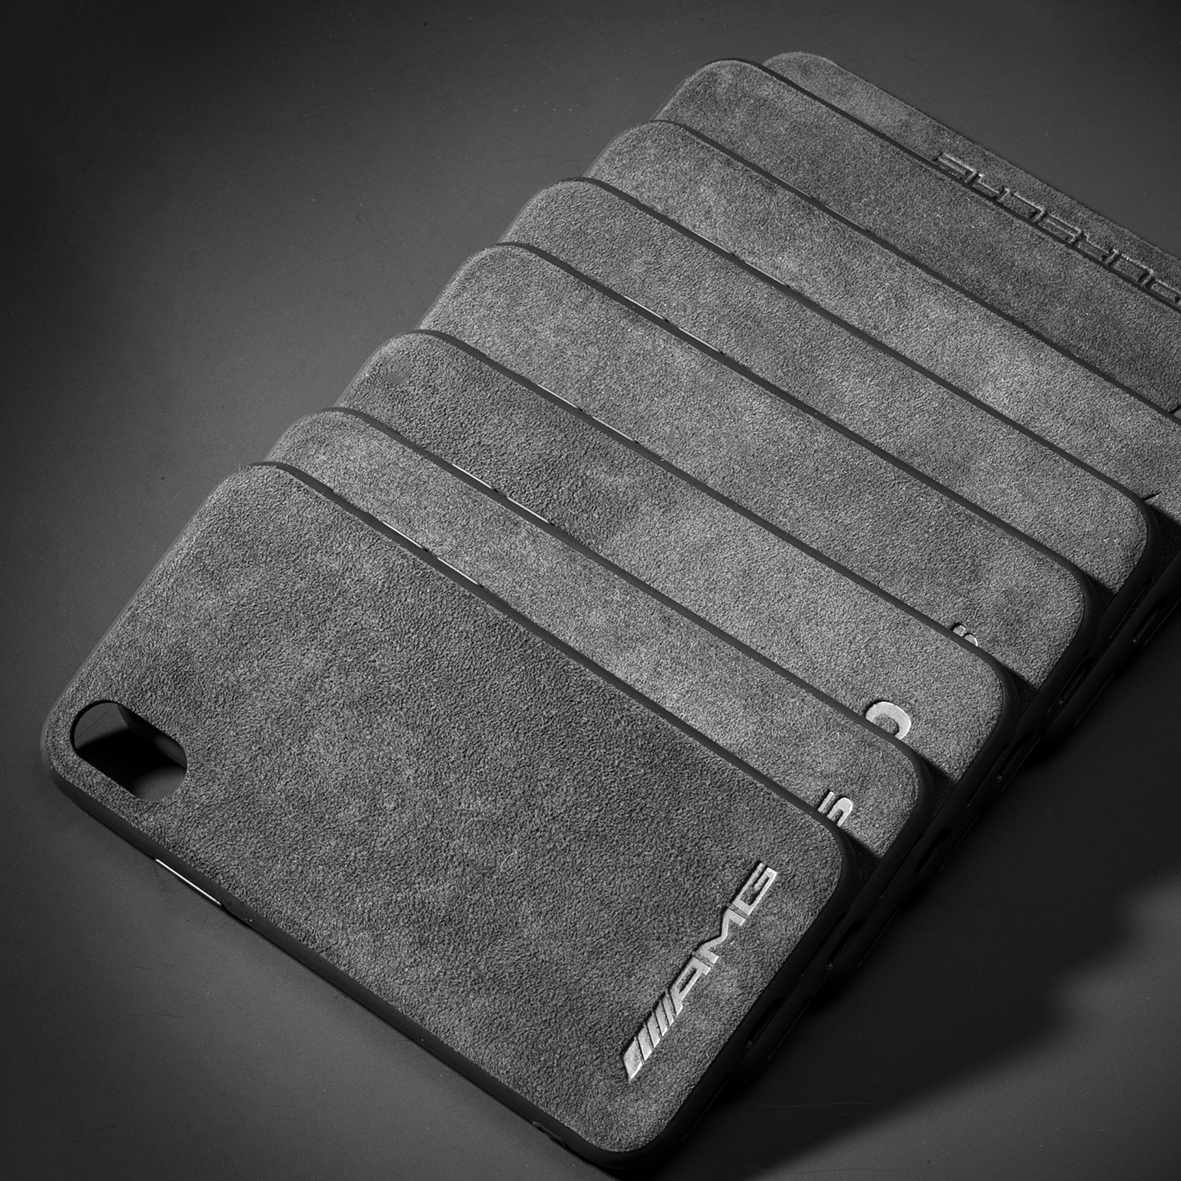 coque alcantara iphone 6